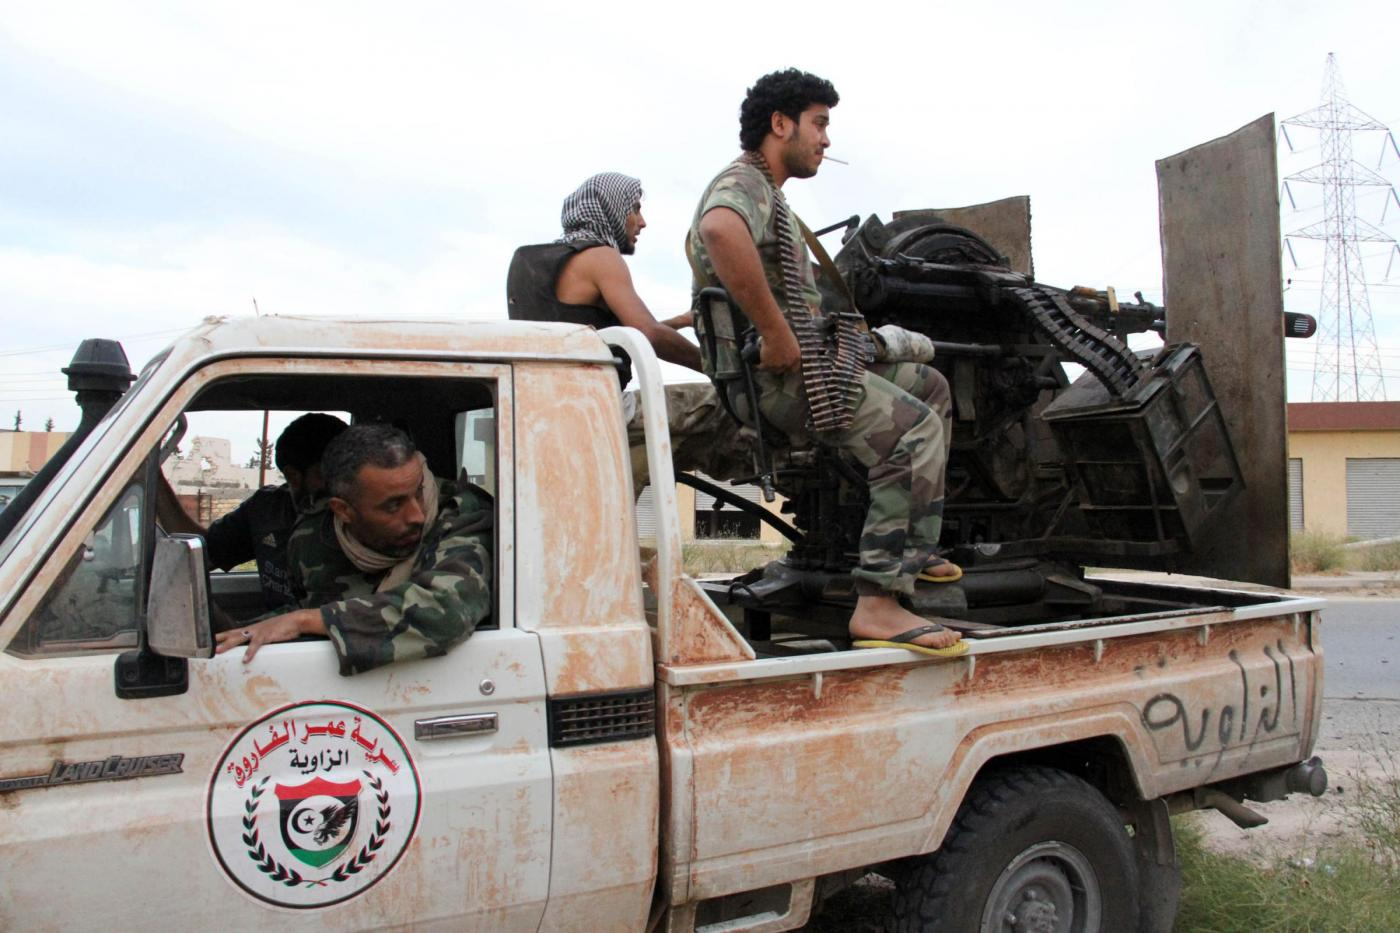 (150422) -- TRIPOLI, April 22, 2015 (Xinhua) -- A Libya Dawn fighter fires as heavy fighting goes on in Wershefana region of Tripoli, Libya, on April 22, 2015. Fierce fighting between Libya Dawn militias and pro-government forces broke out on Wednesday in Weshefana region, according to military sources and witnesses. (Xinhua/Hamza Turkia)